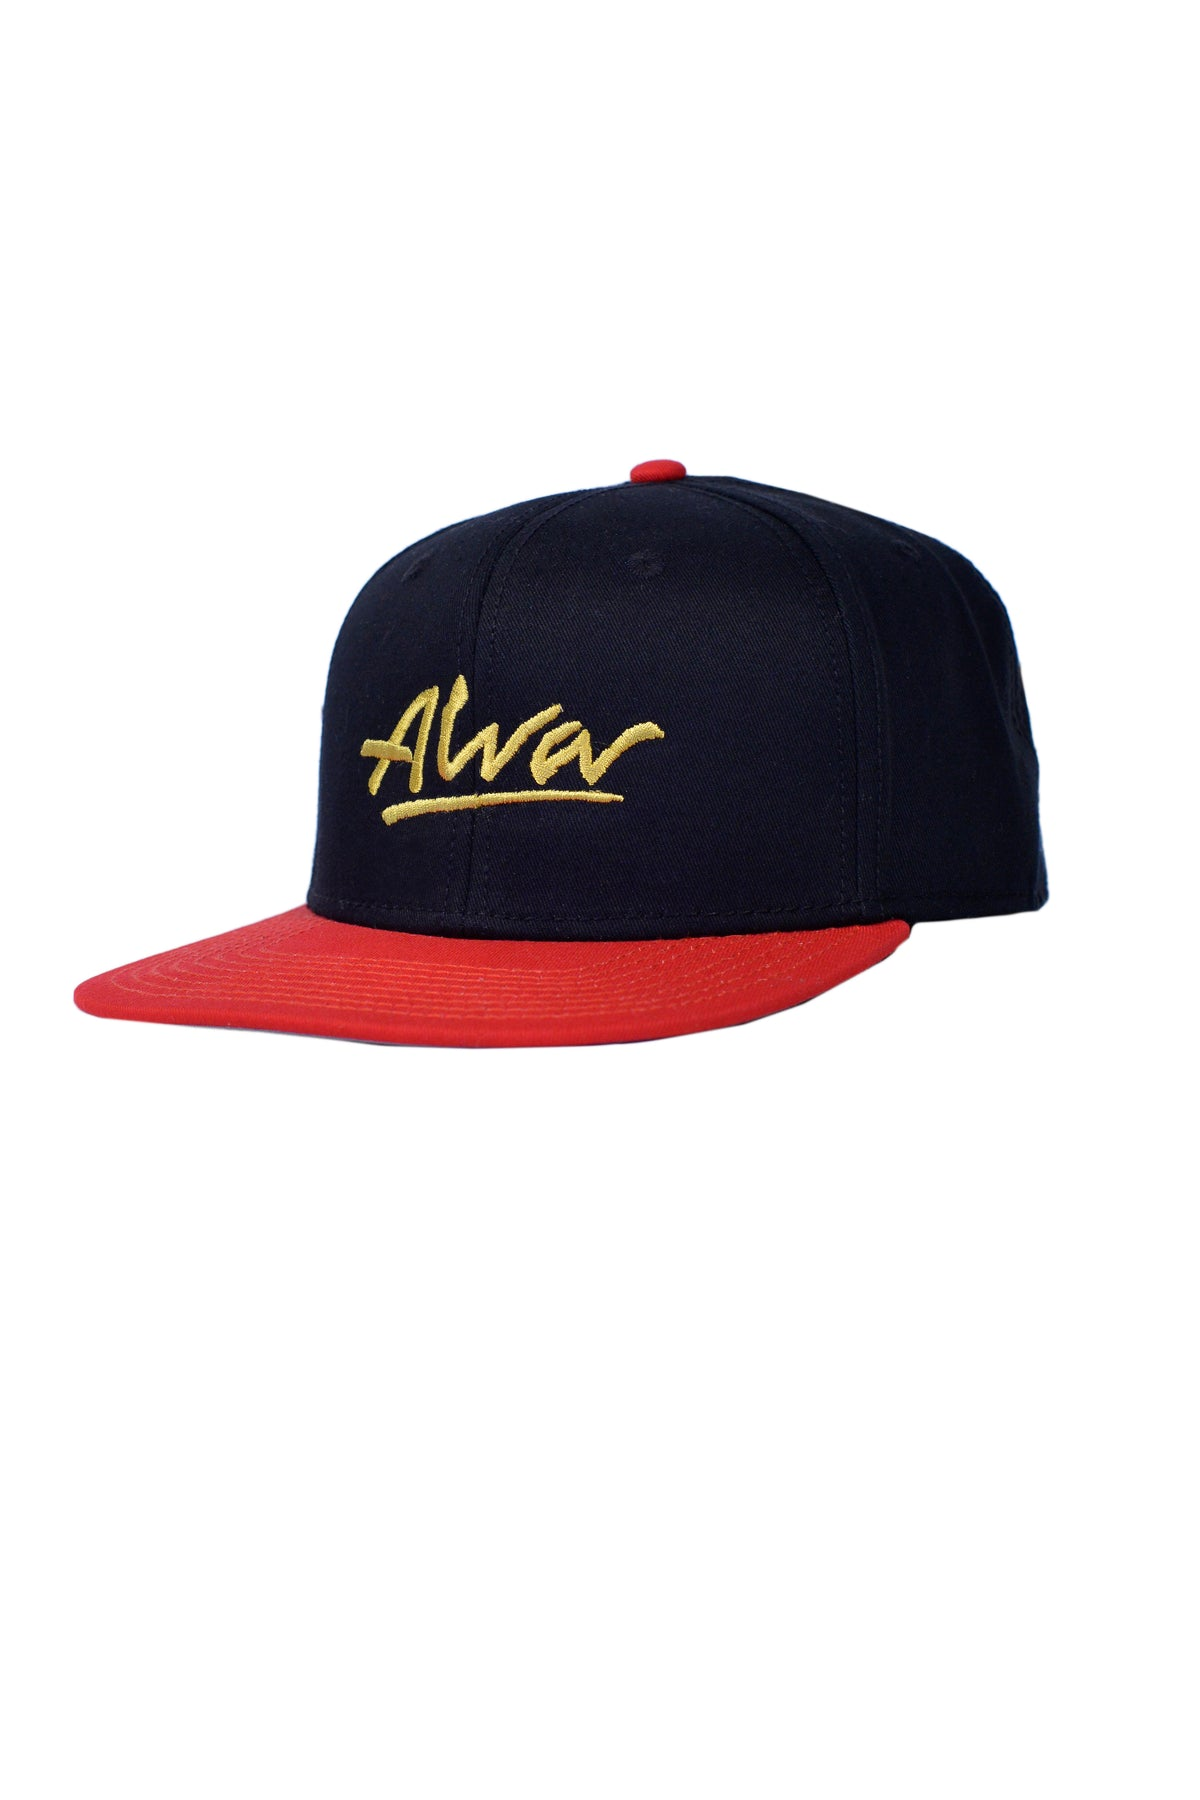 ALVA OG SNAPBACK - RED AND BLACK